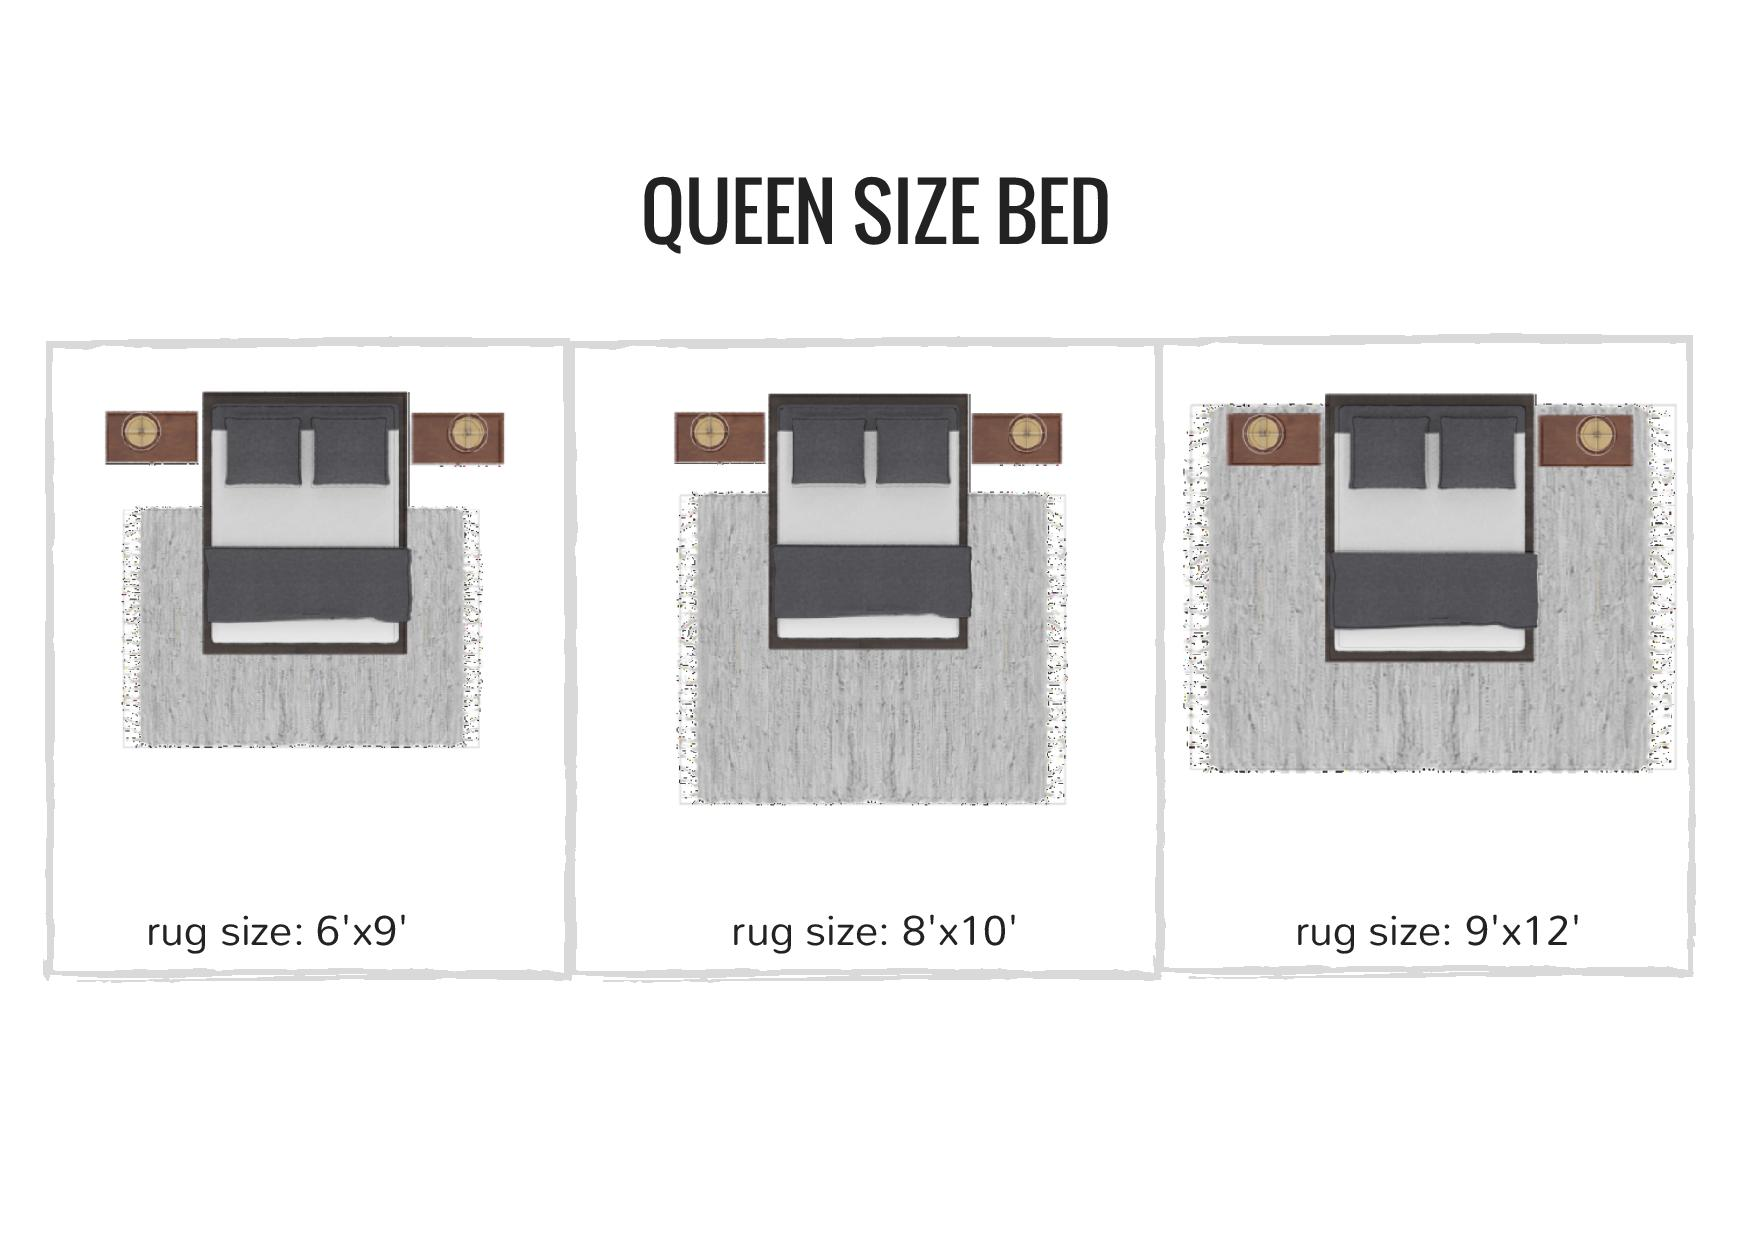 Rug Size Placement Guide Nadine Stay, What Size Rug Do You Need For A Queen Bed